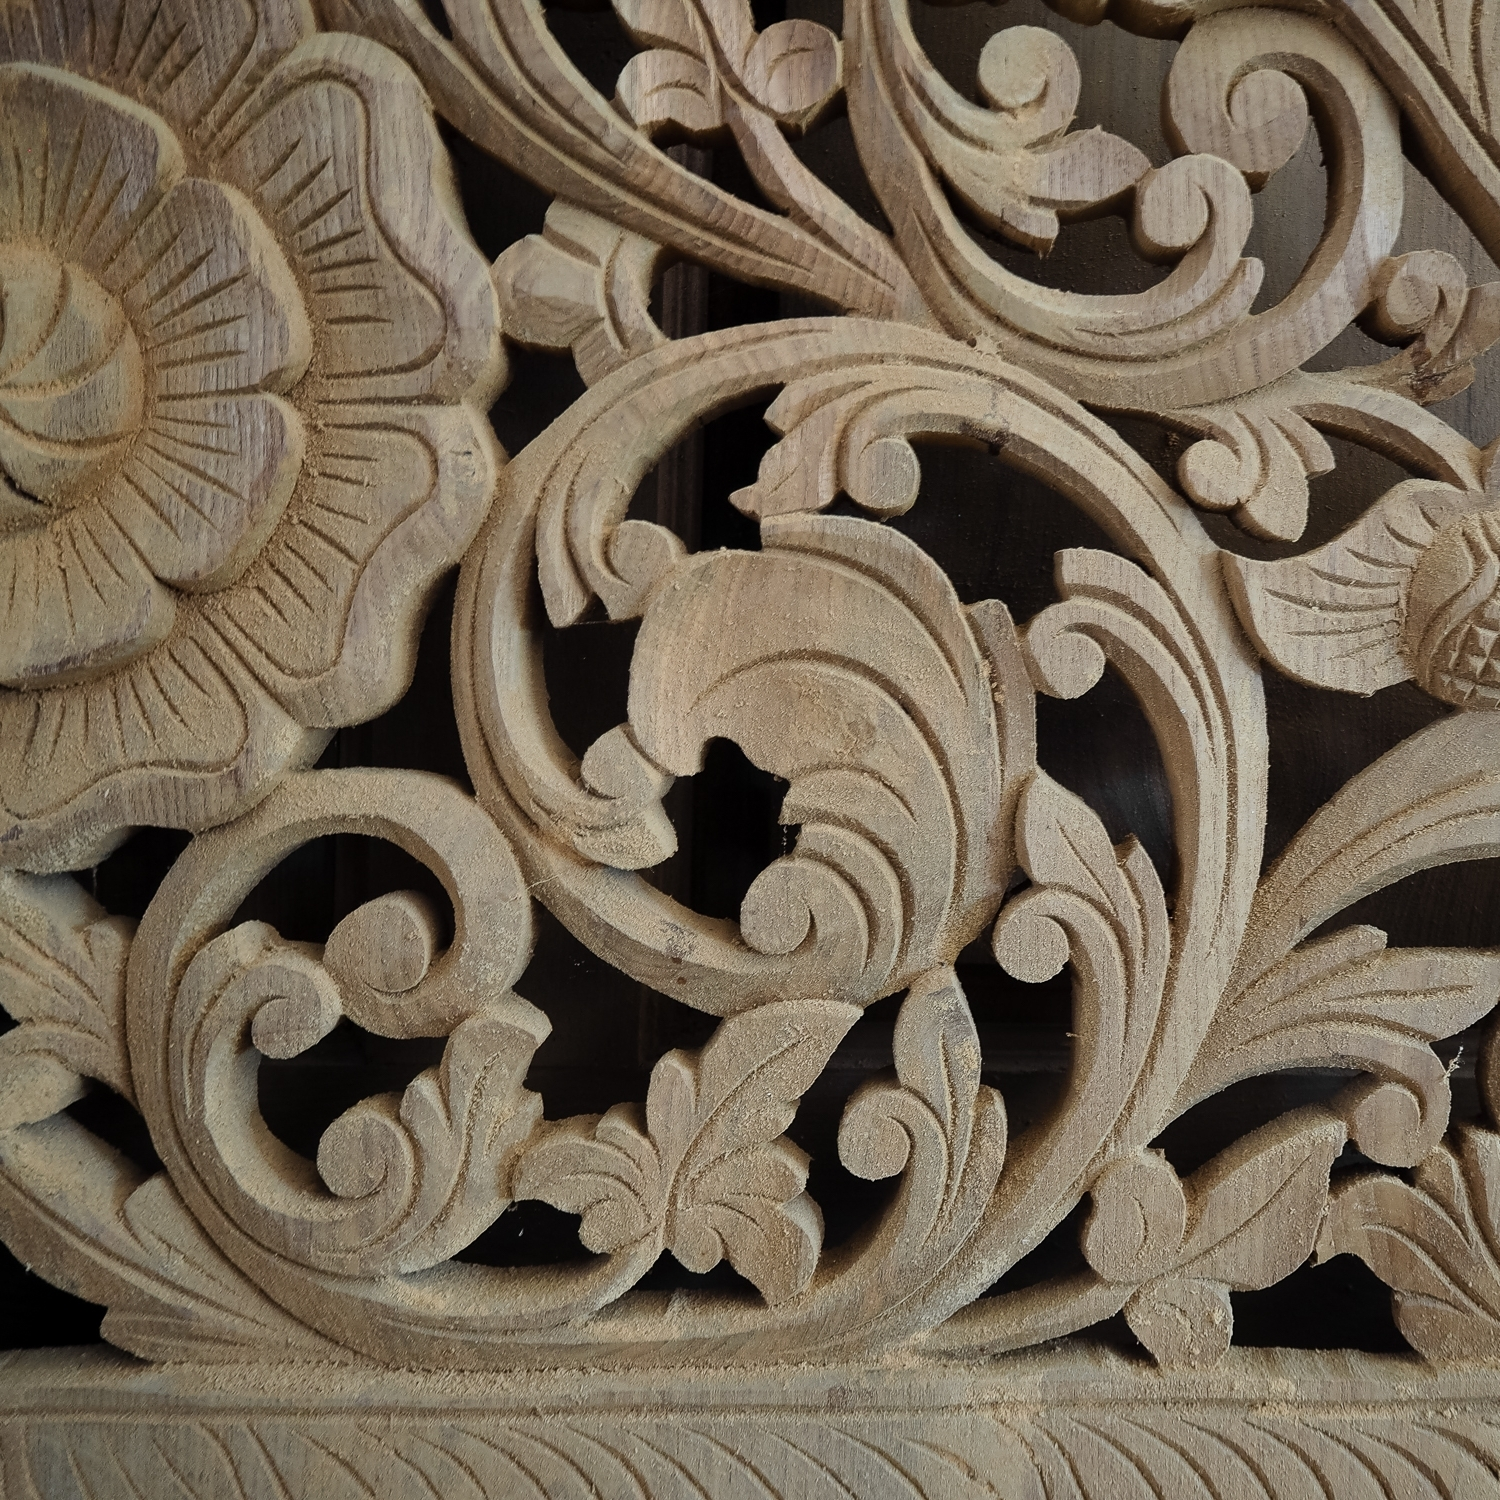 Oriental Wall Art Intended For Popular Buy Carved Bed Panel Oriental Wall Art Decor, Carved Wood Headboard (Gallery 14 of 20)